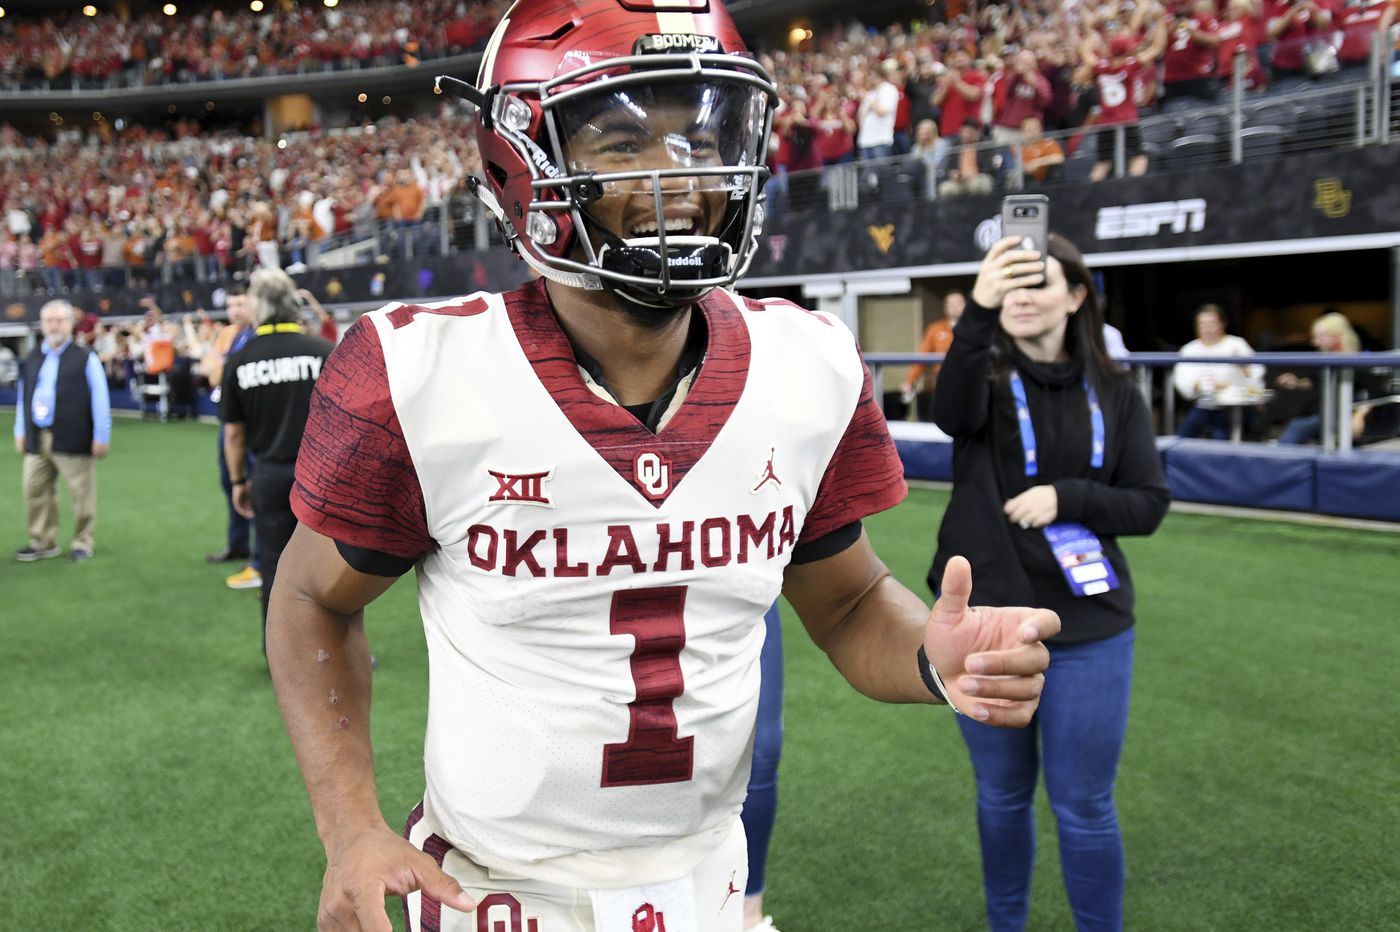 Oklahoma's Game-Sealing Touchdown Came on An Illegal Formation